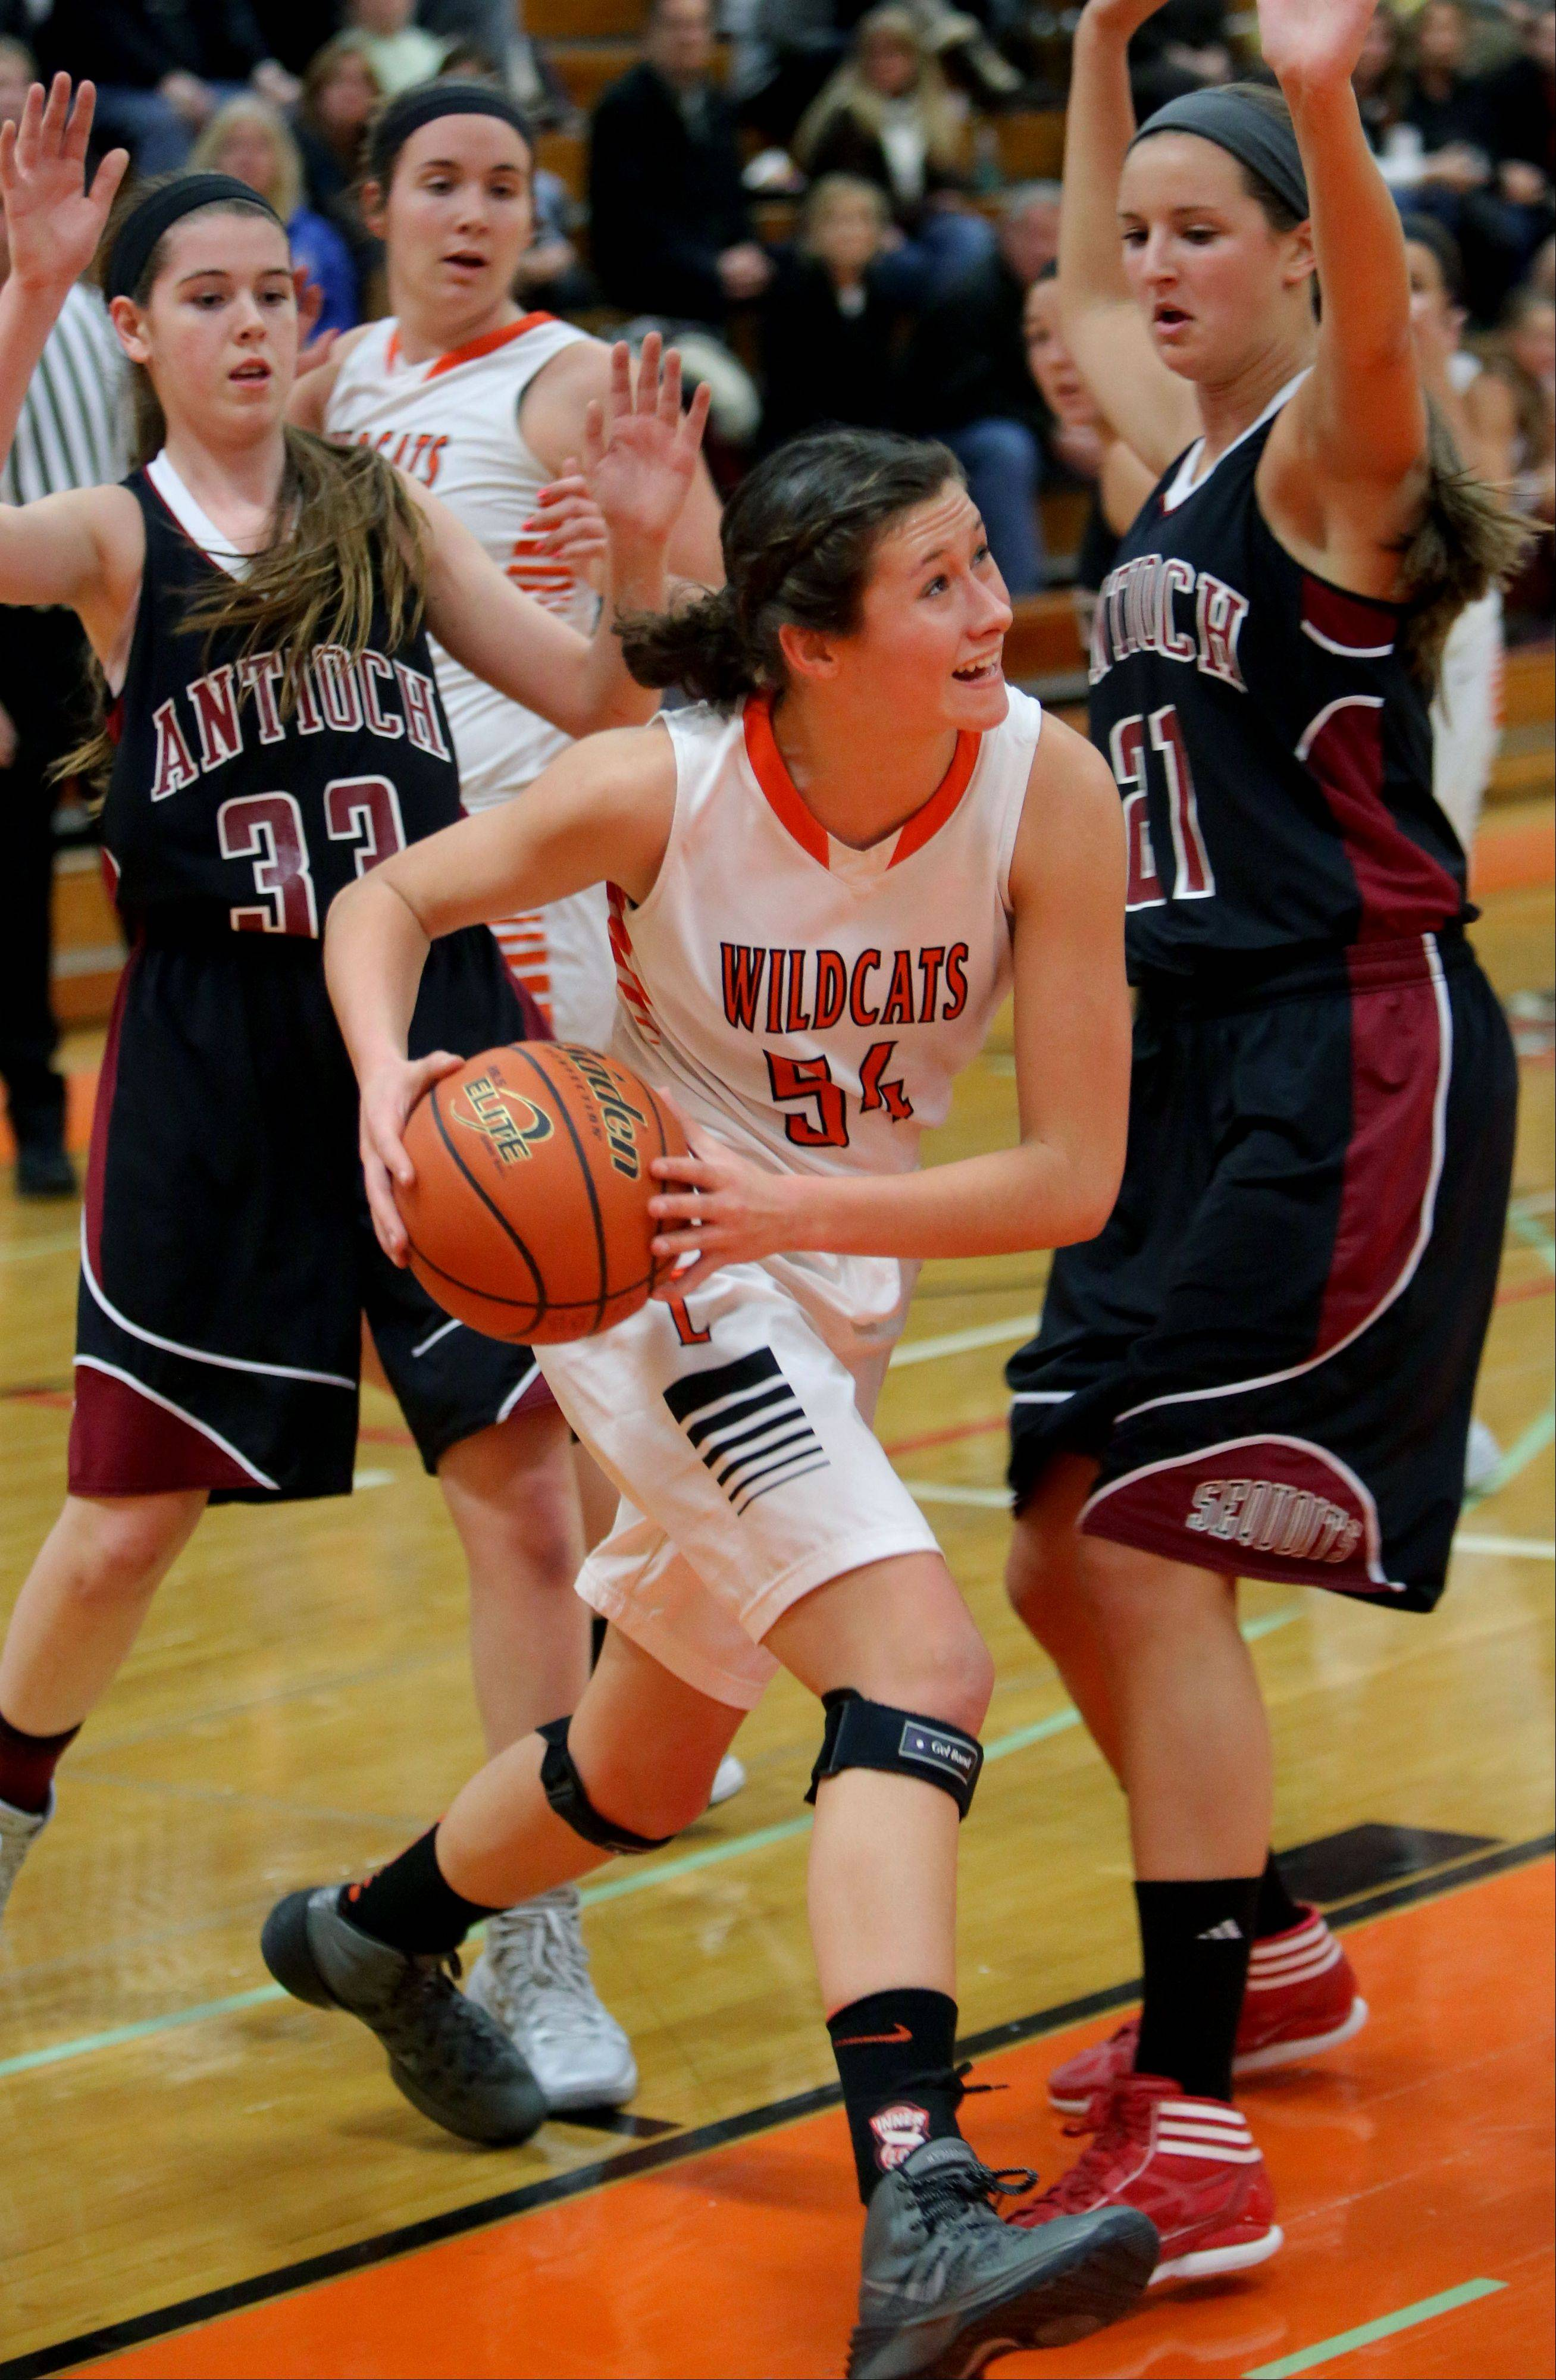 Libertyville's Claire Keefe splits the defense of Antioch's Kelly Johnson, left, and Carly McCameron.